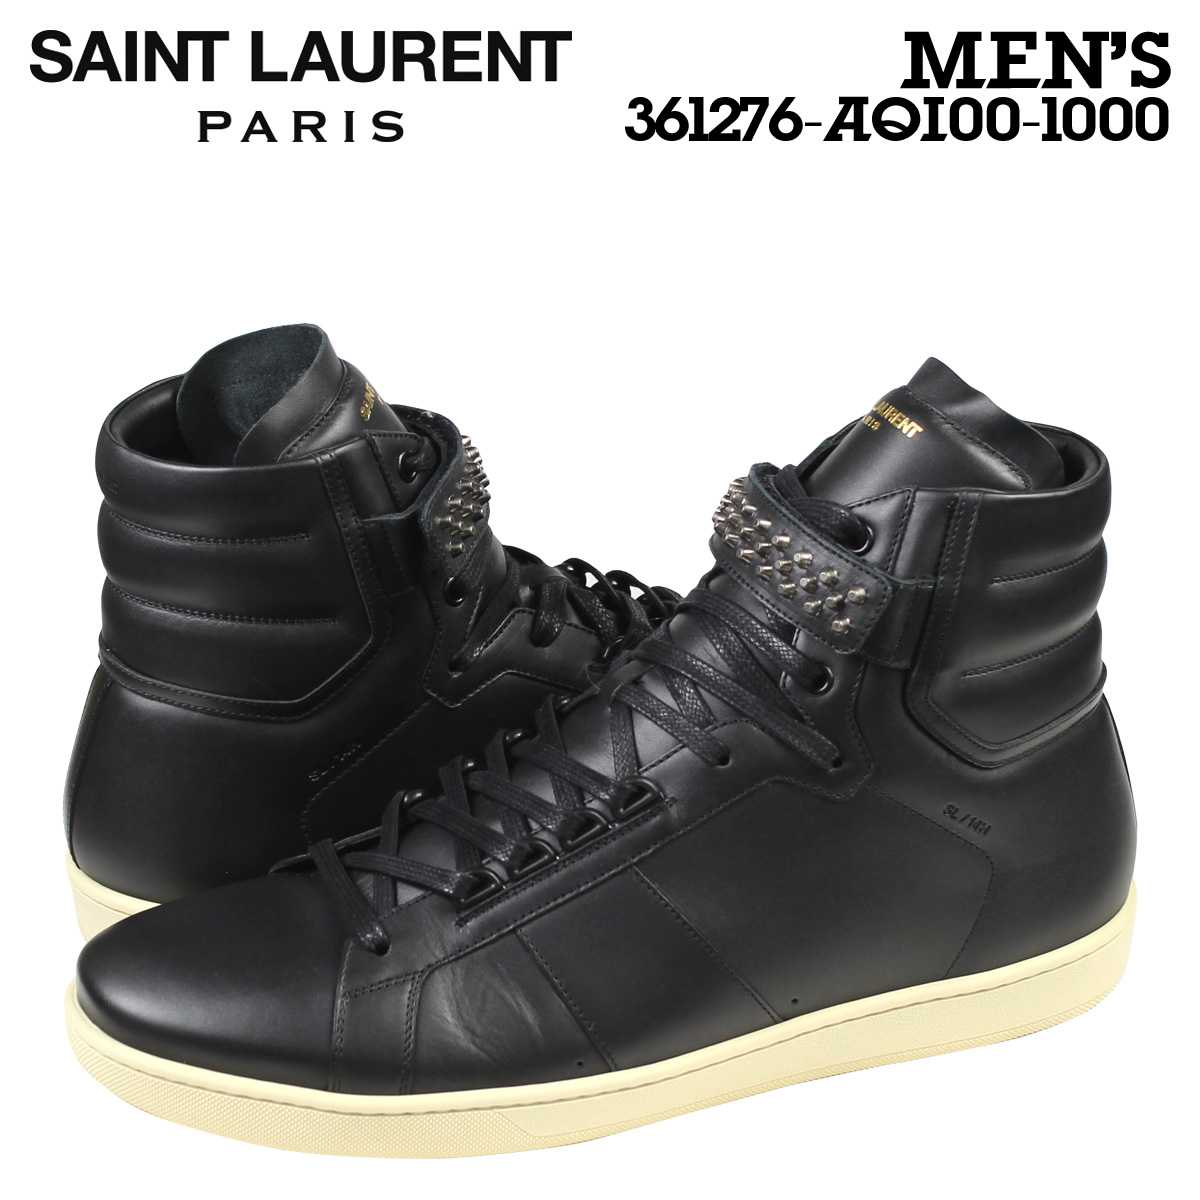 6e936a190a Laurent Saint Laurent men's SL14H SIGNATURE COURT CLASSIC HI TOP SNEAKER  sneakers signature coat classic Hi-Top 361276 black [11 / 4 new in stock]